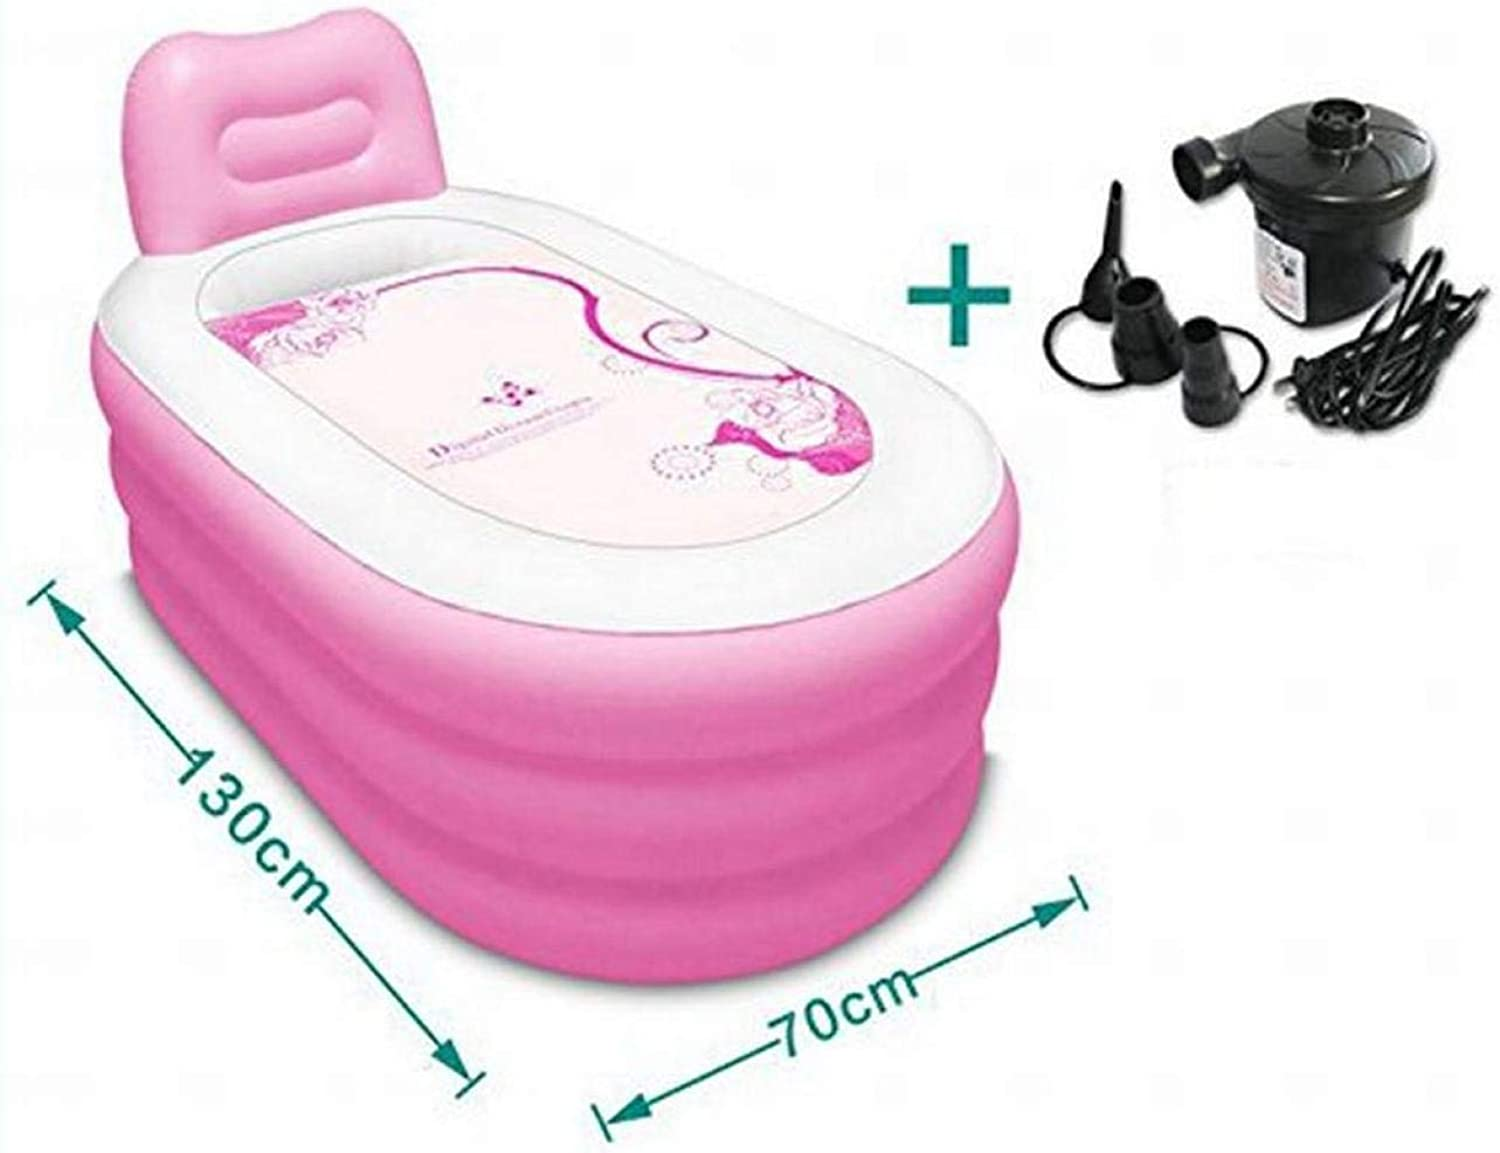 Bathtubs Inflatable, Thicker Adults Tub Fold Plastic bluee Pink 130  70Cm 3 Kg Folding, Convenient Pool,Pink,1